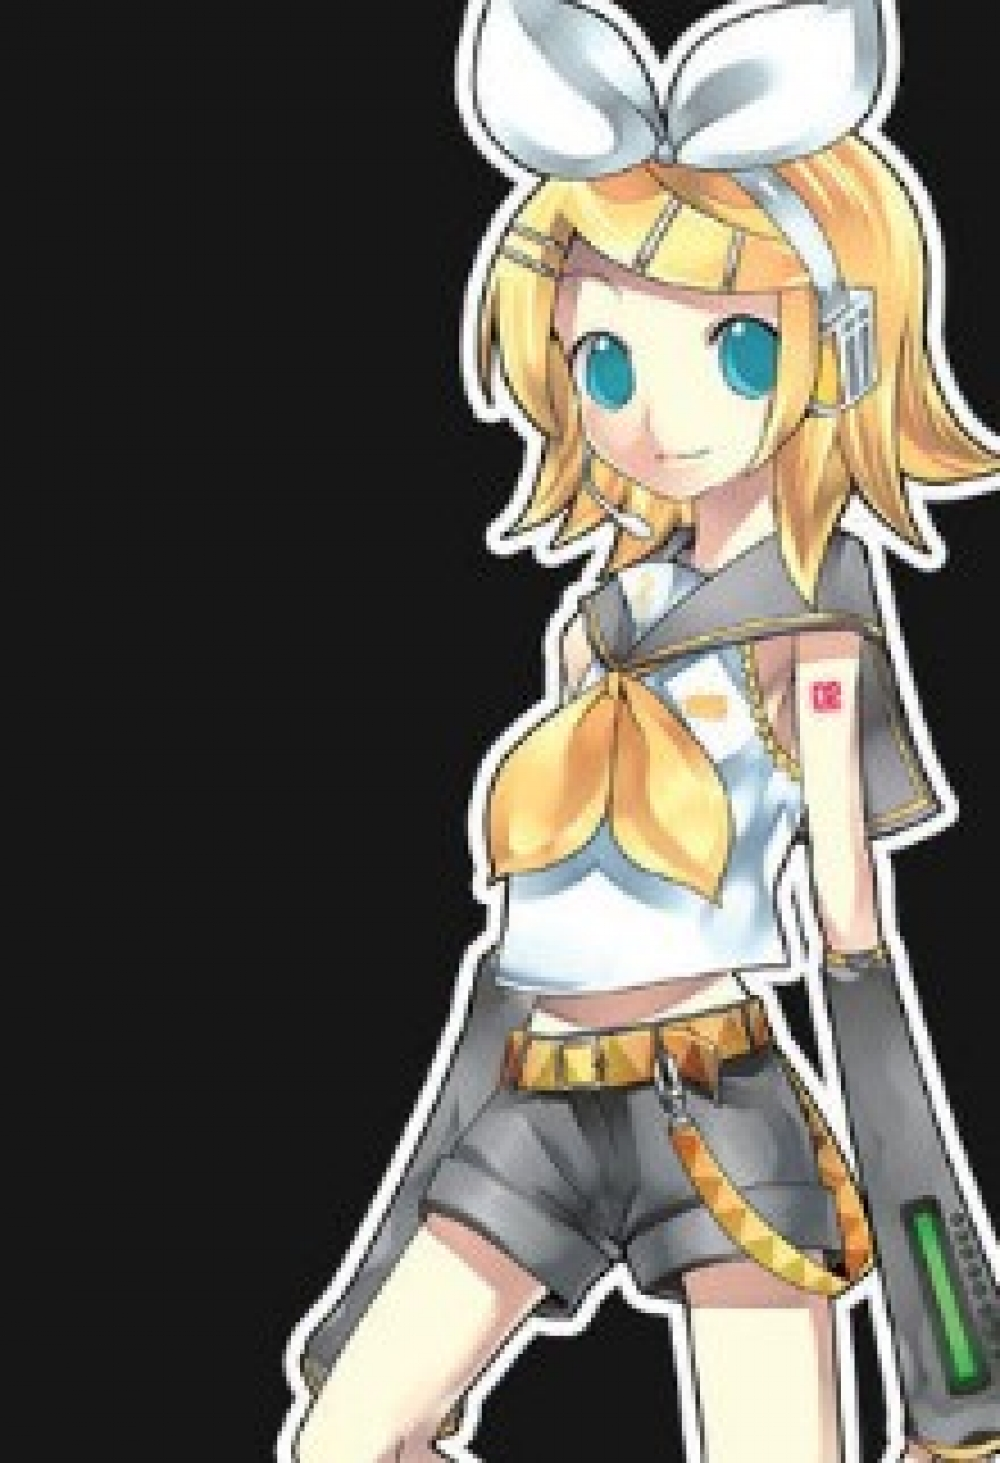 Rin Kagamine character